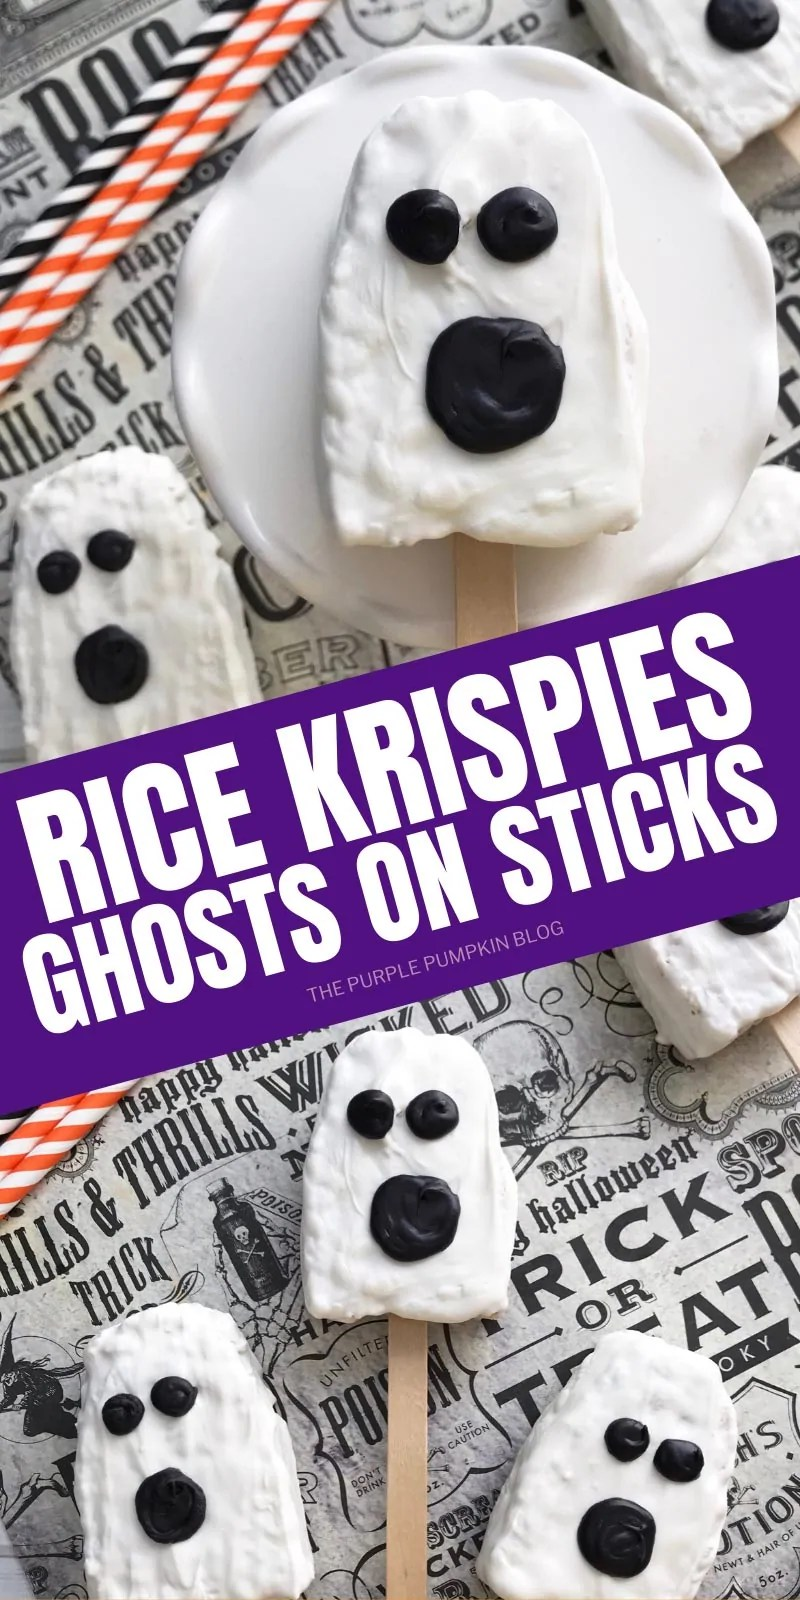 Rice Krispies Ghosts on Sticks